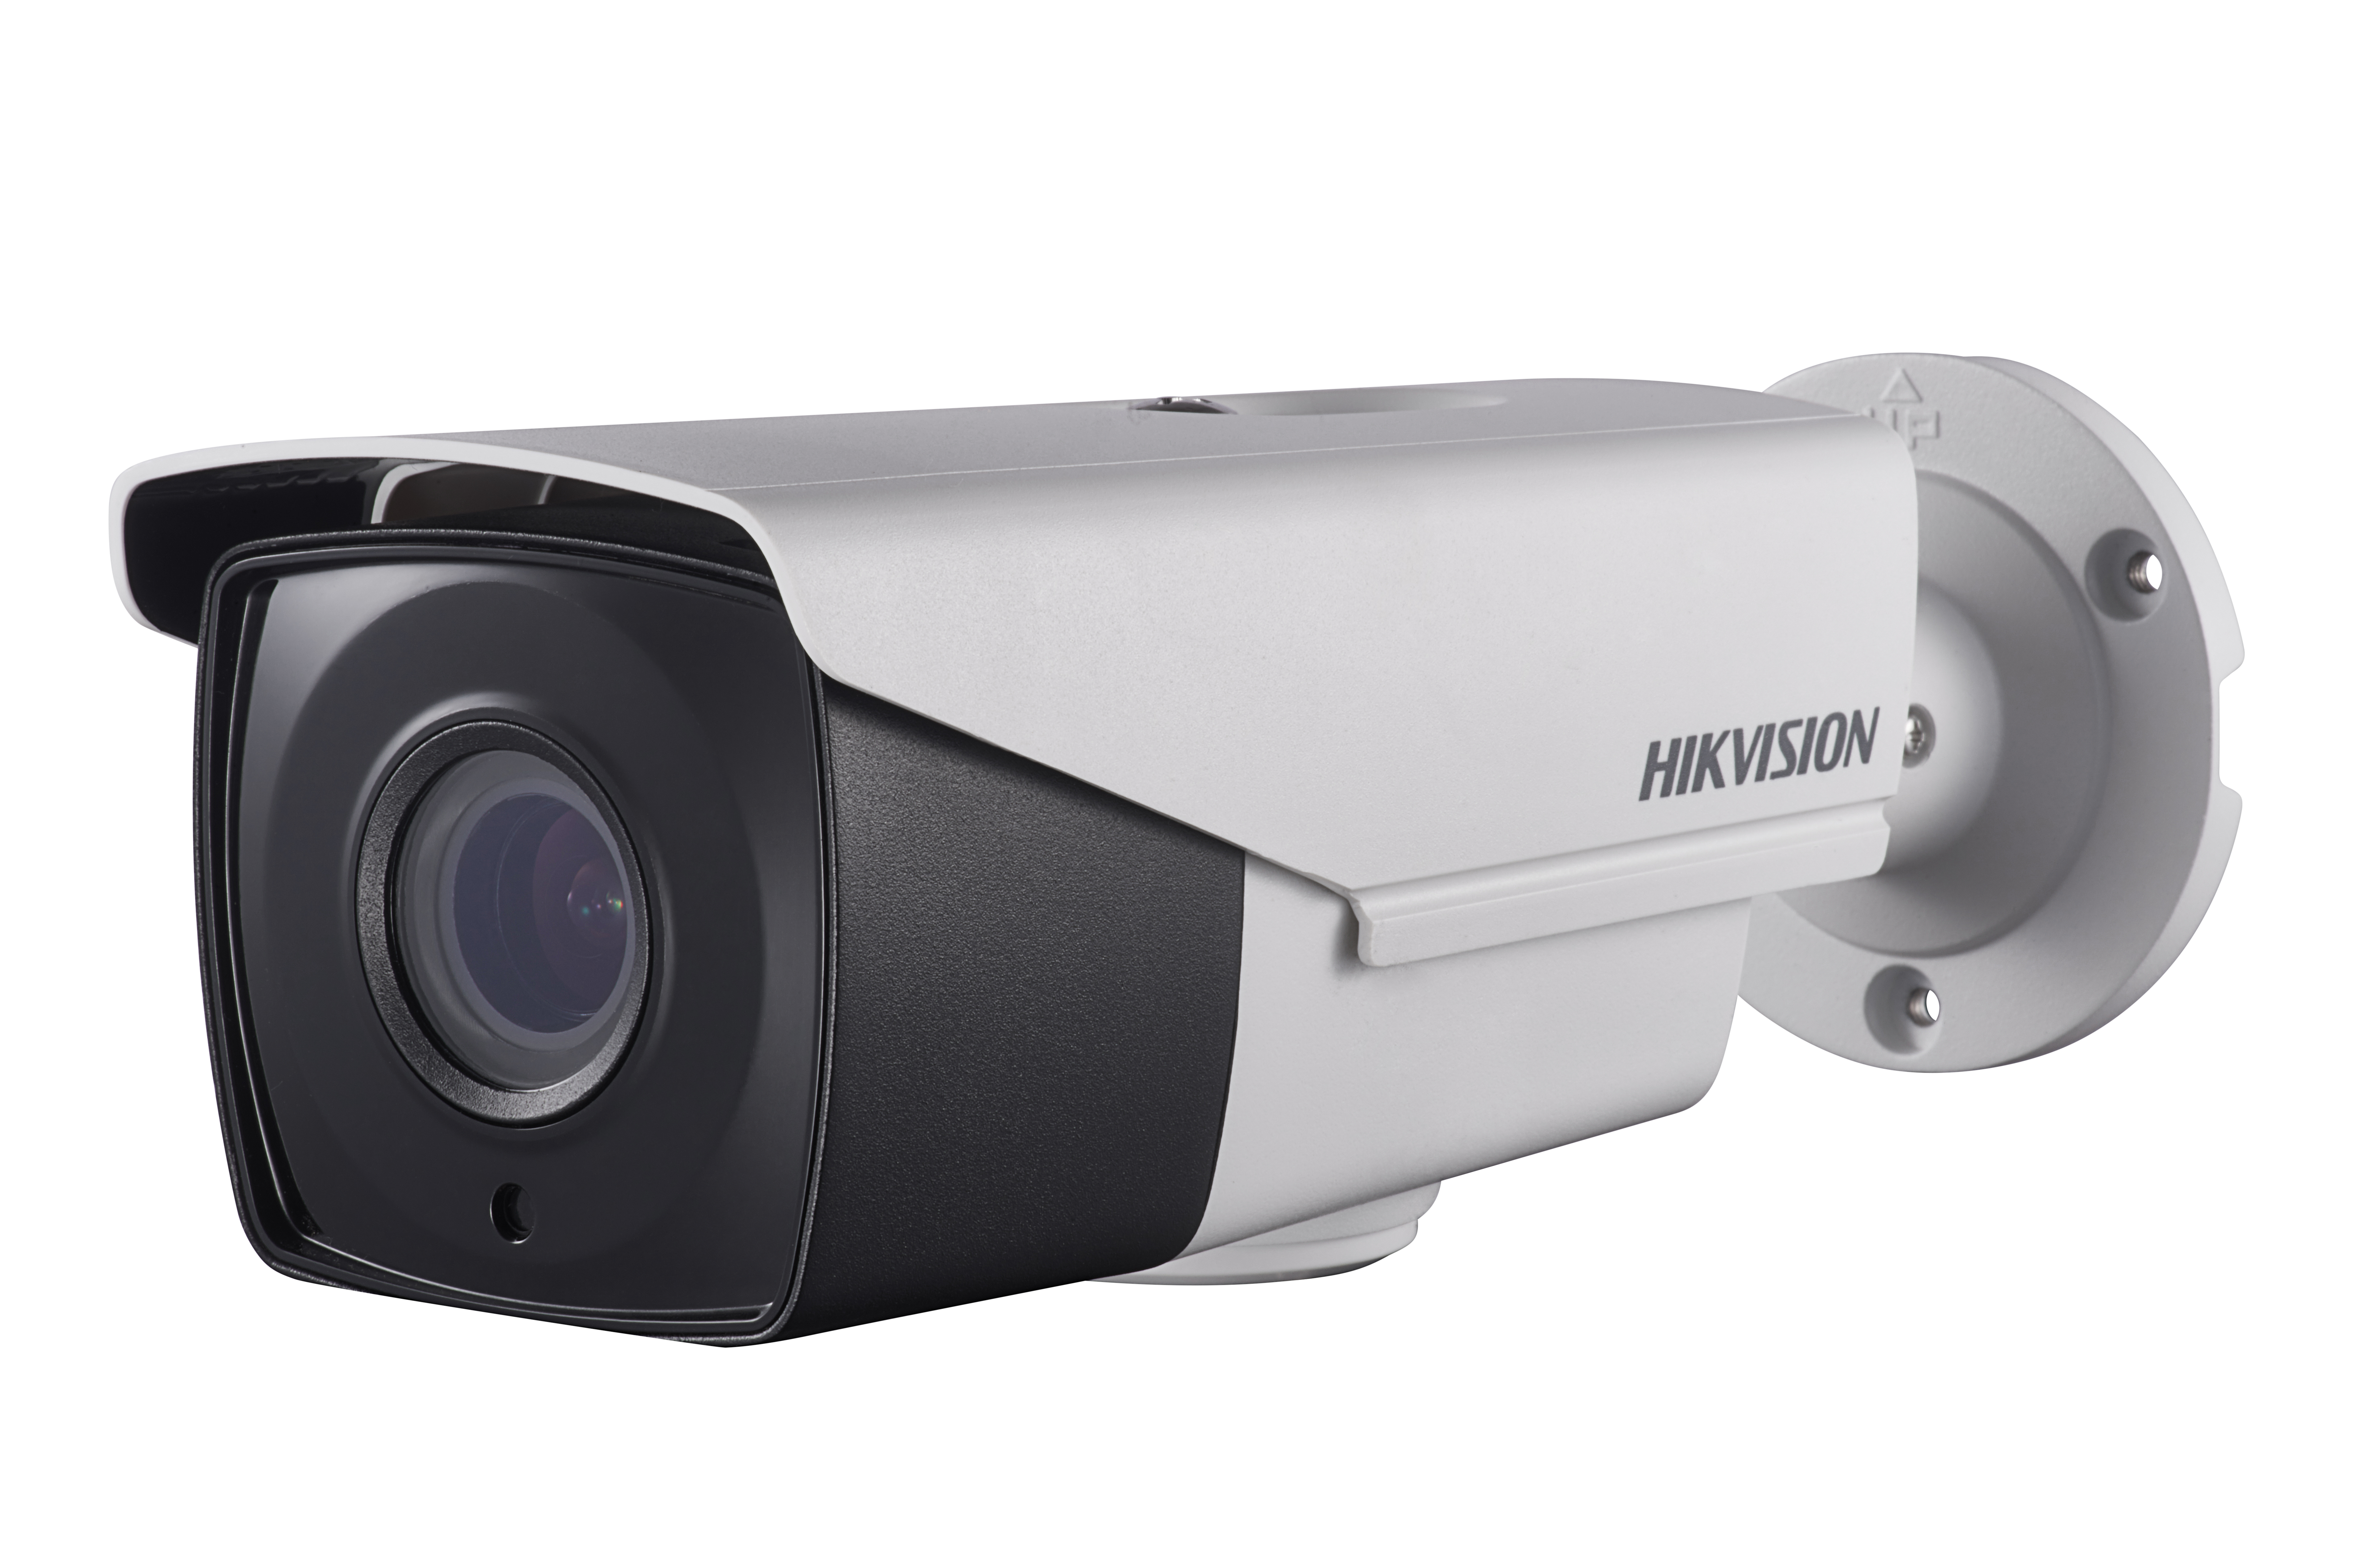 HD 1080p Motorised Varifocal EXIR Bullet Camera